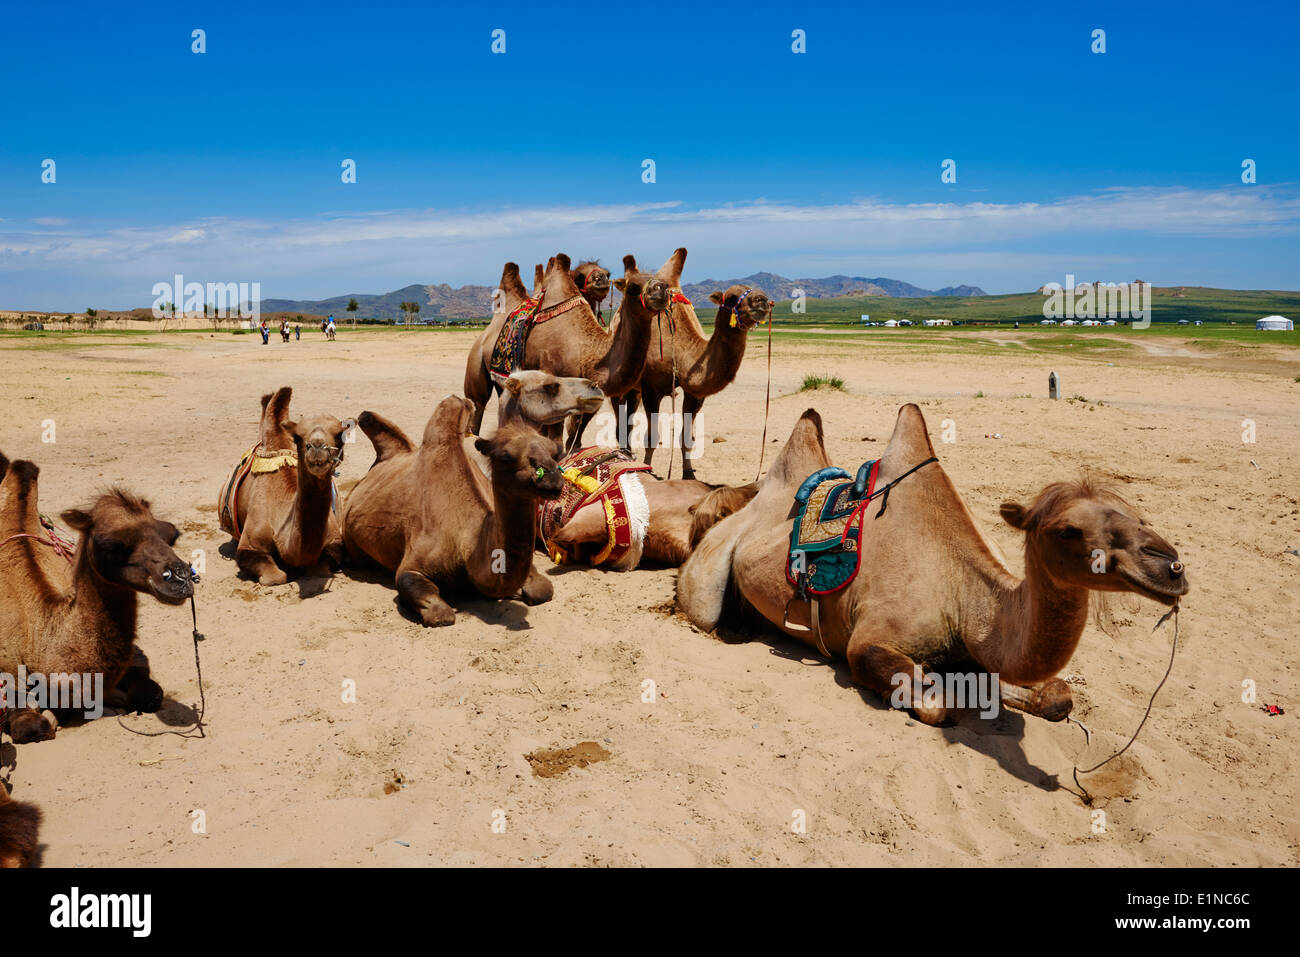 Mongolia, Ovorkhangai province, camel for tourist at Batkhan national parc Stock Photo